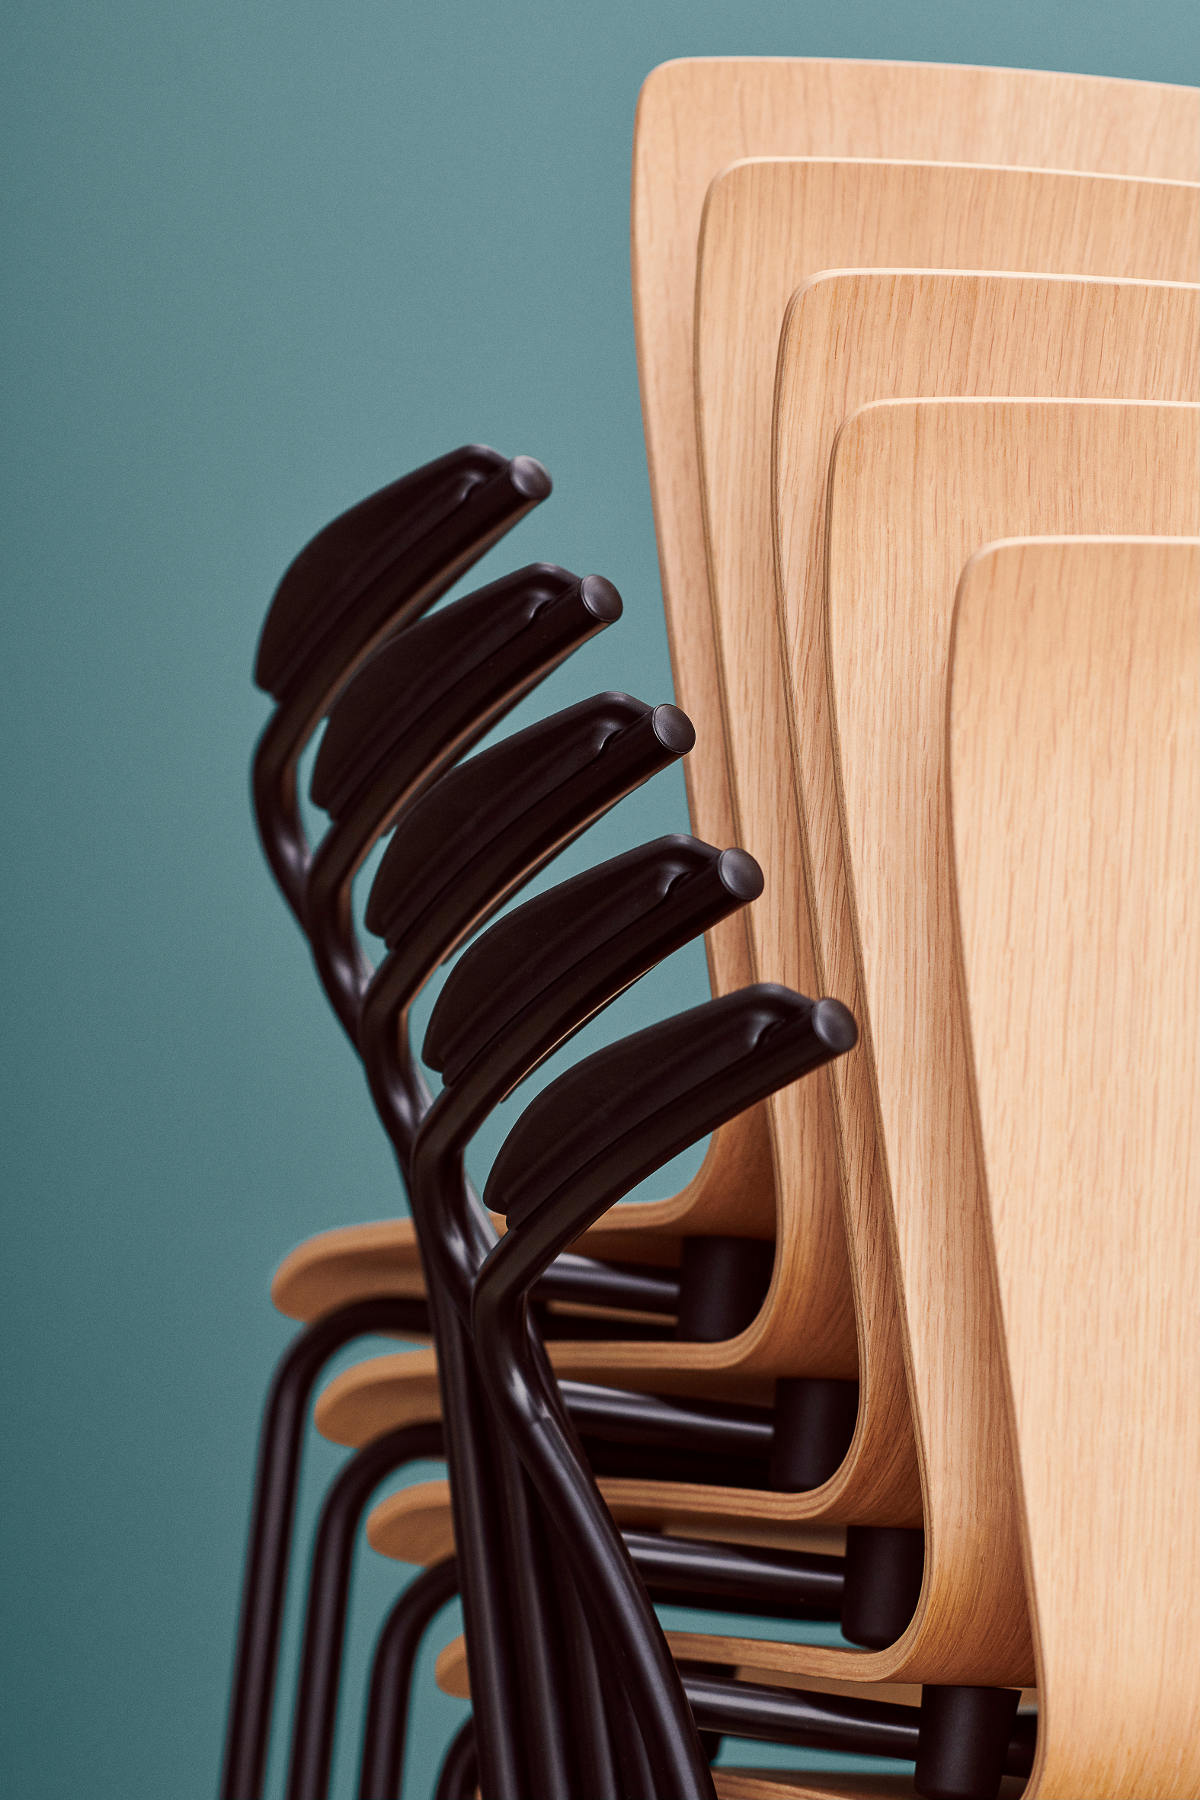 Fritz Hansen_Vico Duo chair by Vico Magistretti_ Oak - VM111